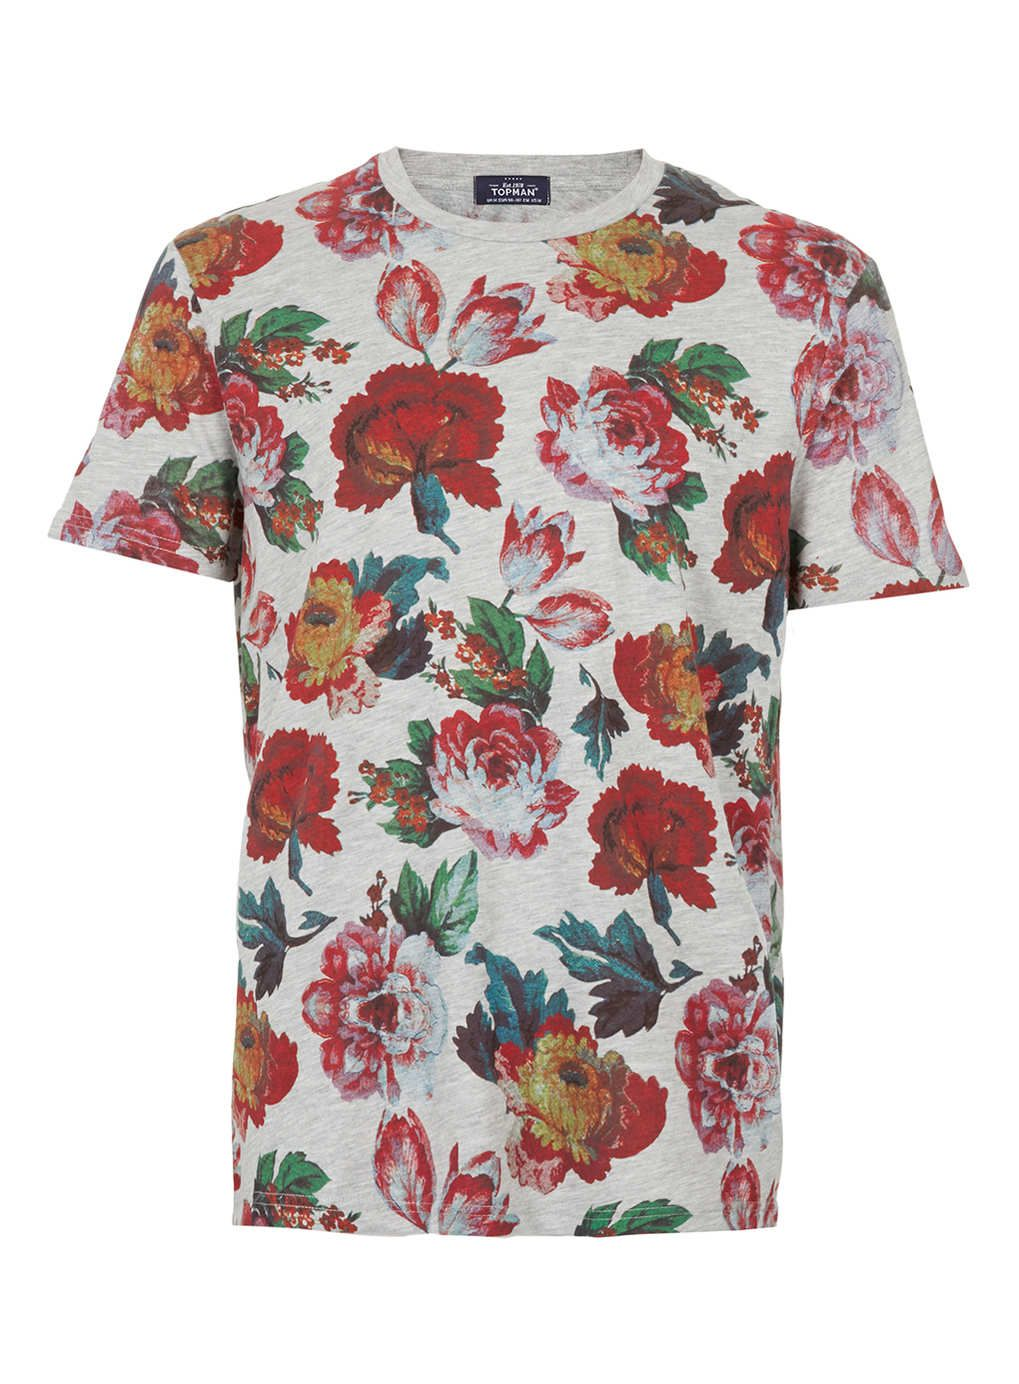 844ad37d2277 TOPMAN roses t-shirt | Lavish Cartel fashion | Grey shirt dress ...